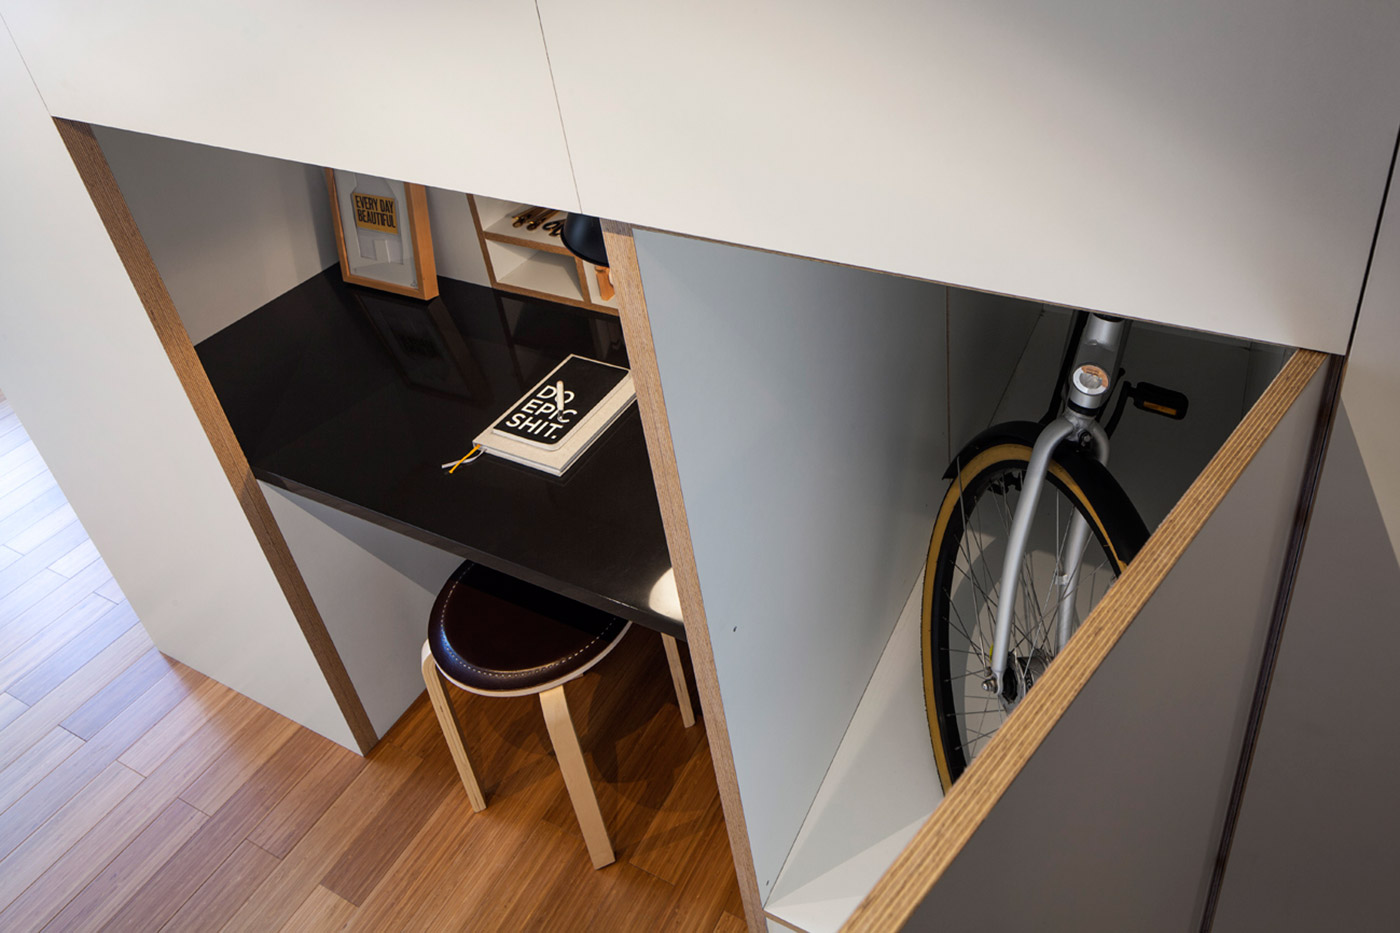 Bike storage ideas